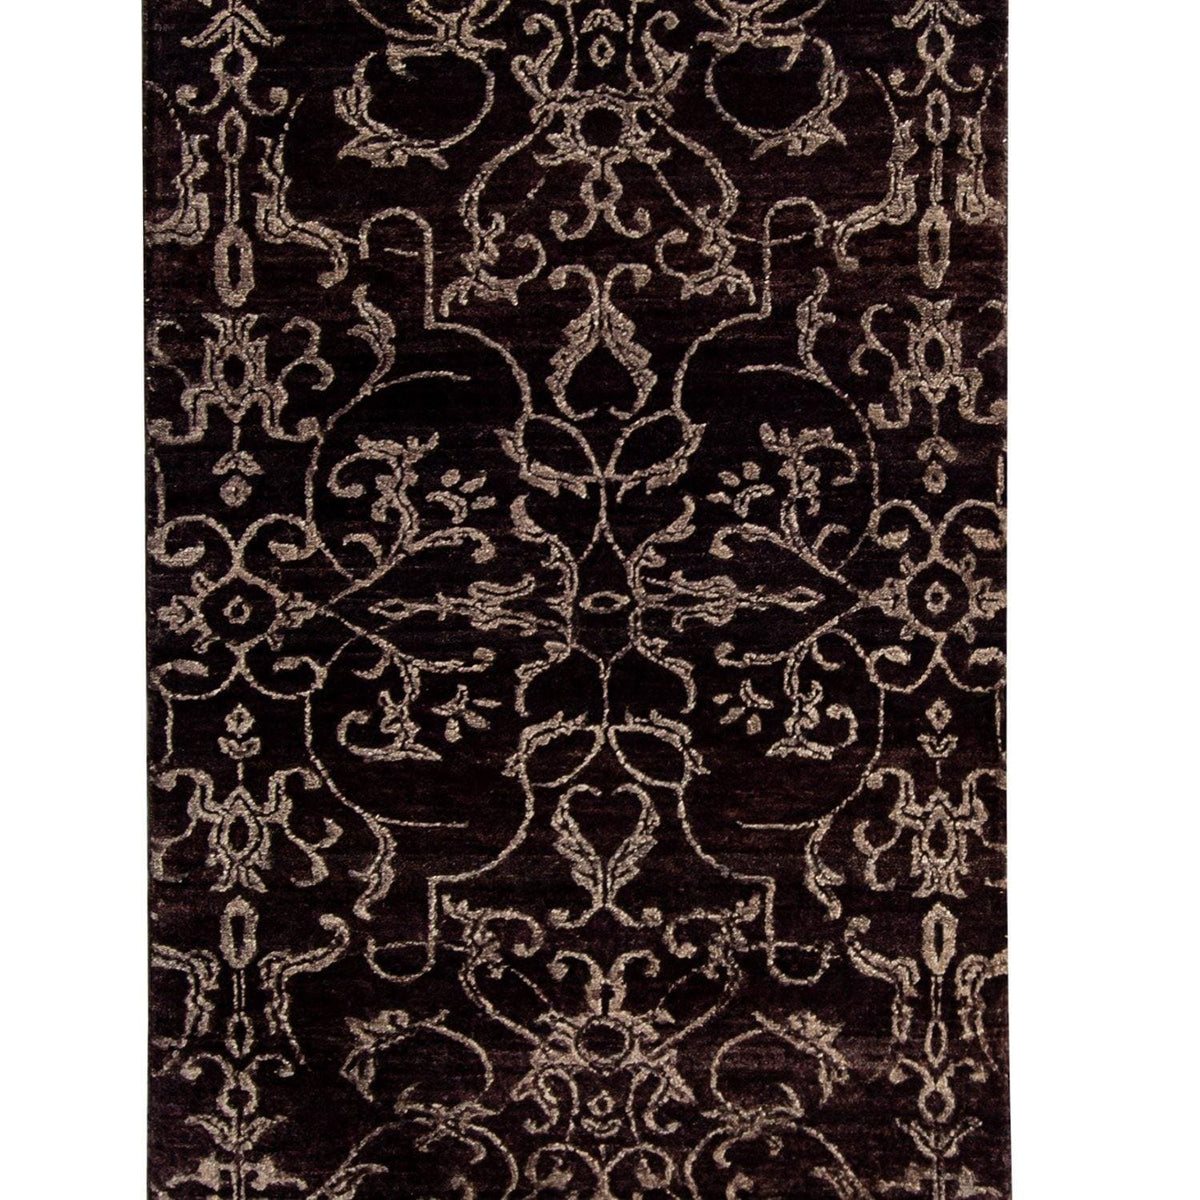 Fine Contempoaray Hand-knotted NZ Wool Runner 74cm x 256cm